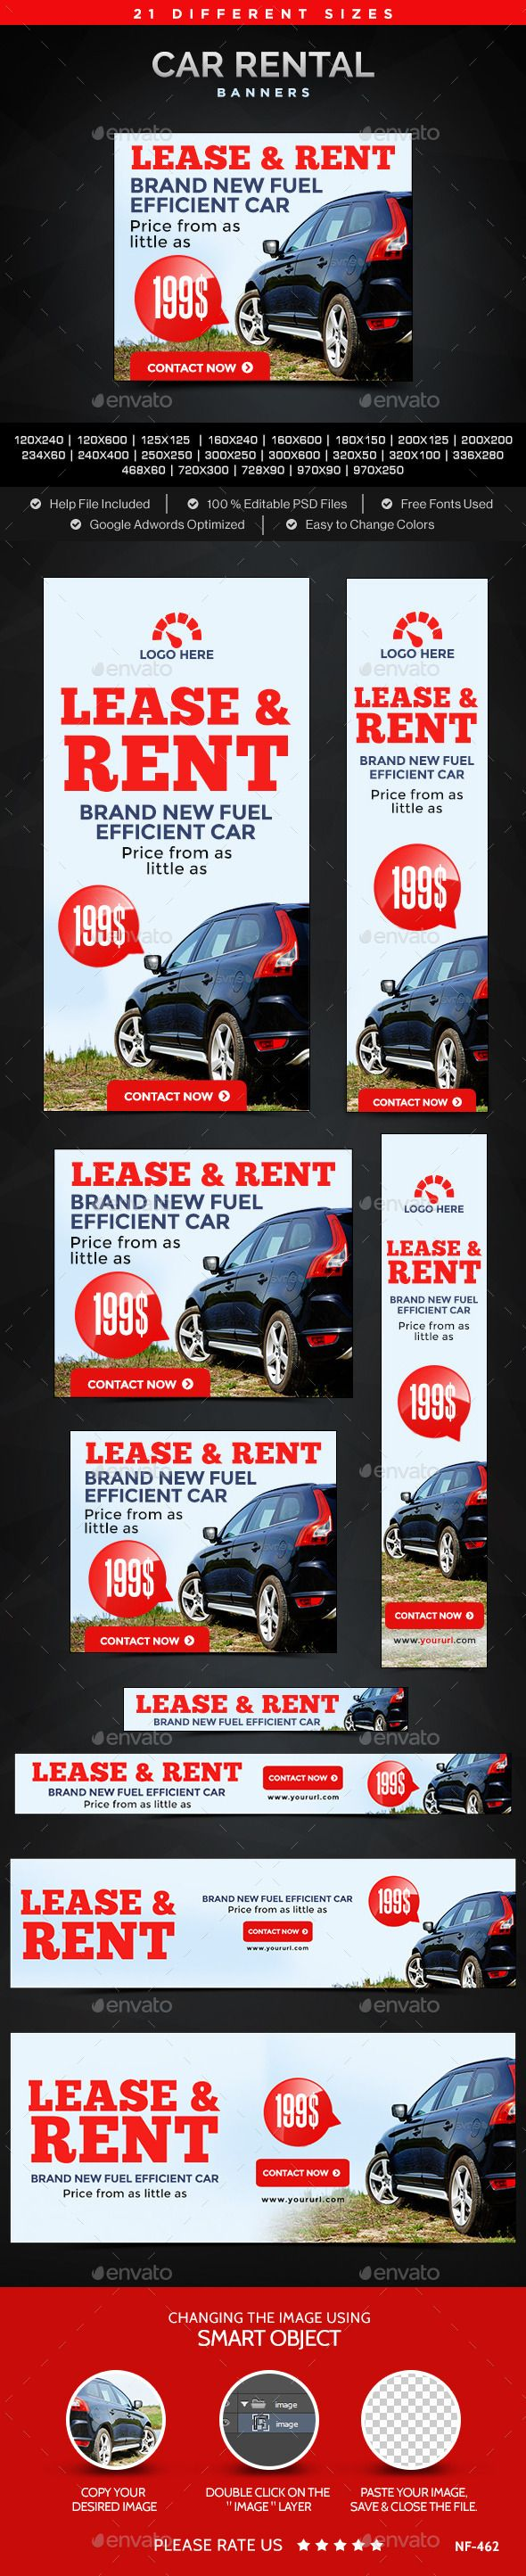 Car Rental Banners Template #design #web Download: http://graphicriver.net/item/car-rental-banners/11932721?ref=ksioks